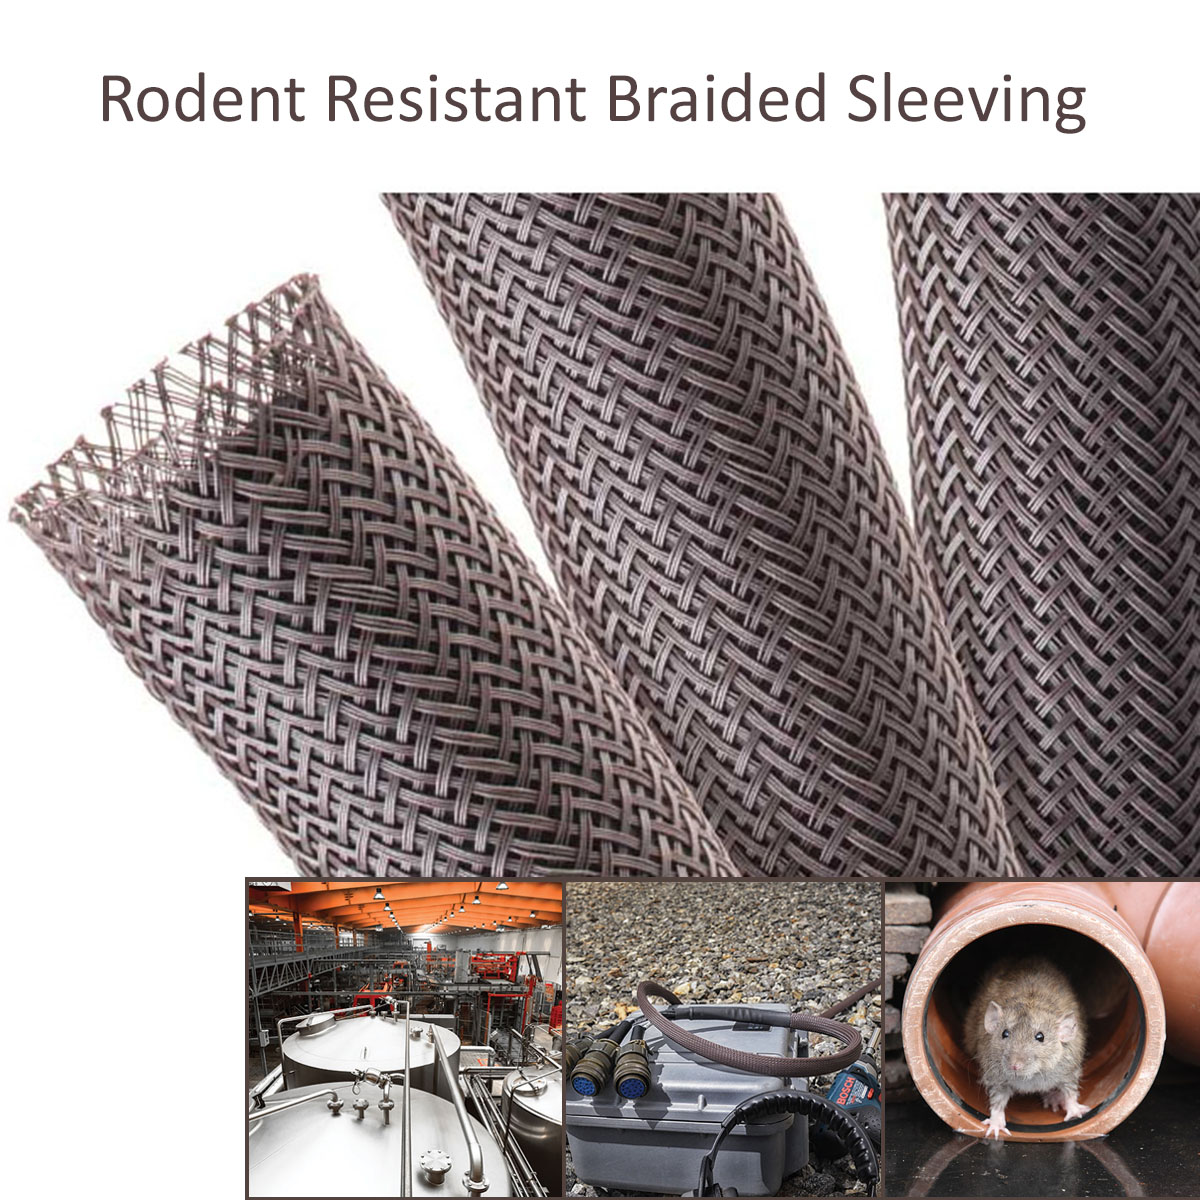 Rodent Resistant Braided Sleeving